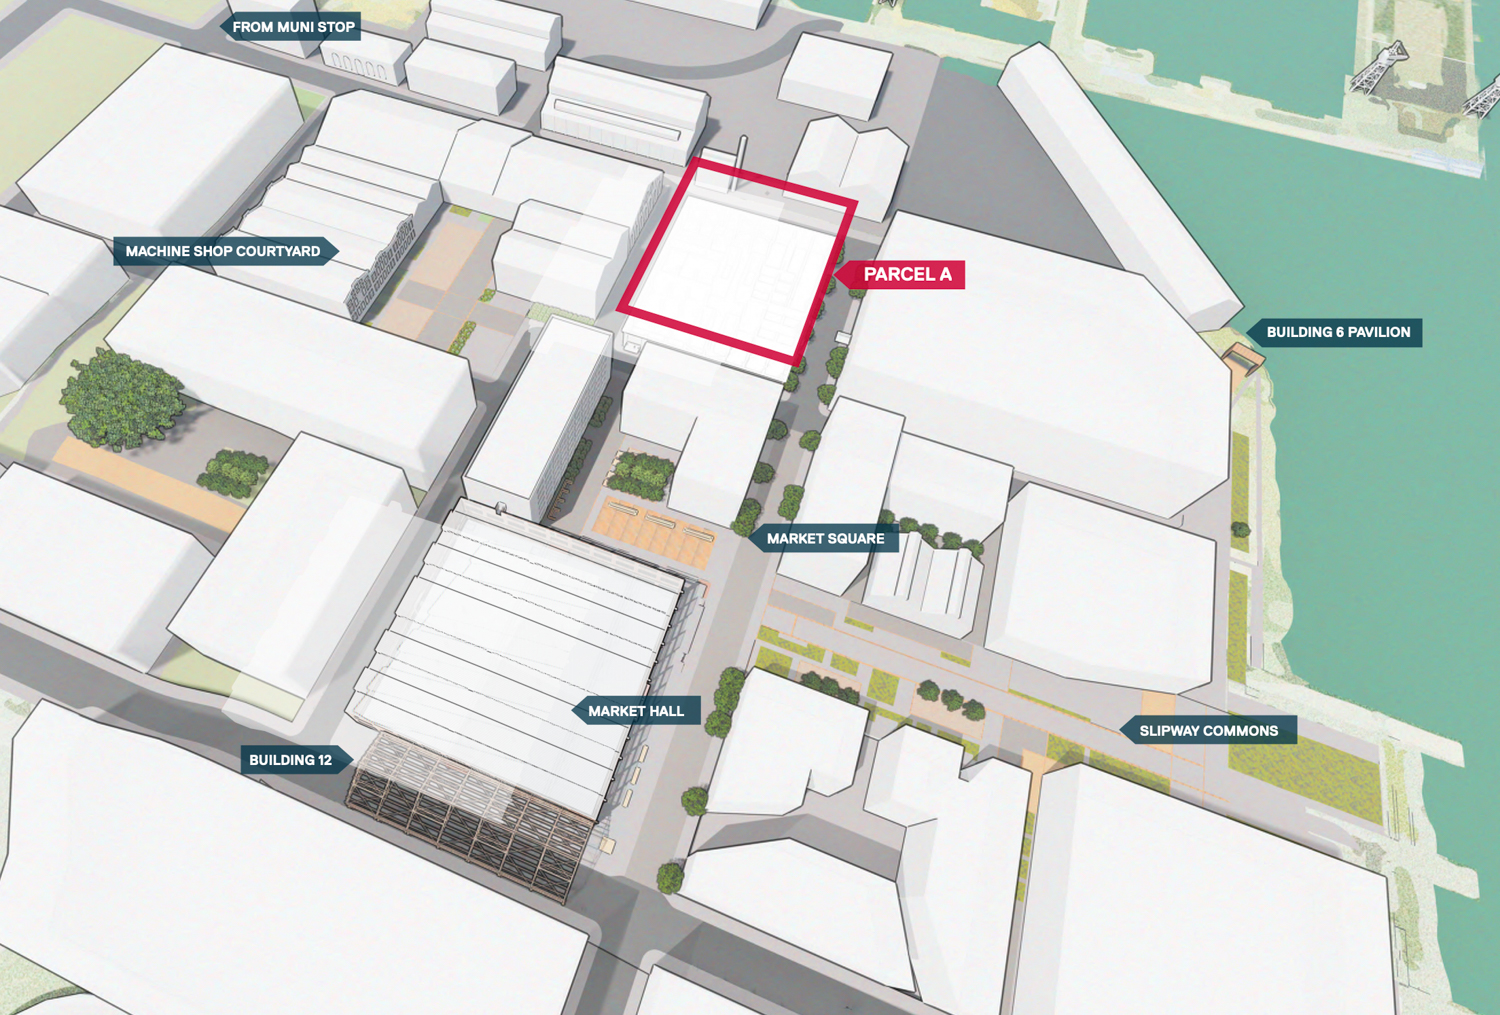 Pier 70's Parcel A at 88 Maryland Street site highlighted in red, image courtesy planning documents